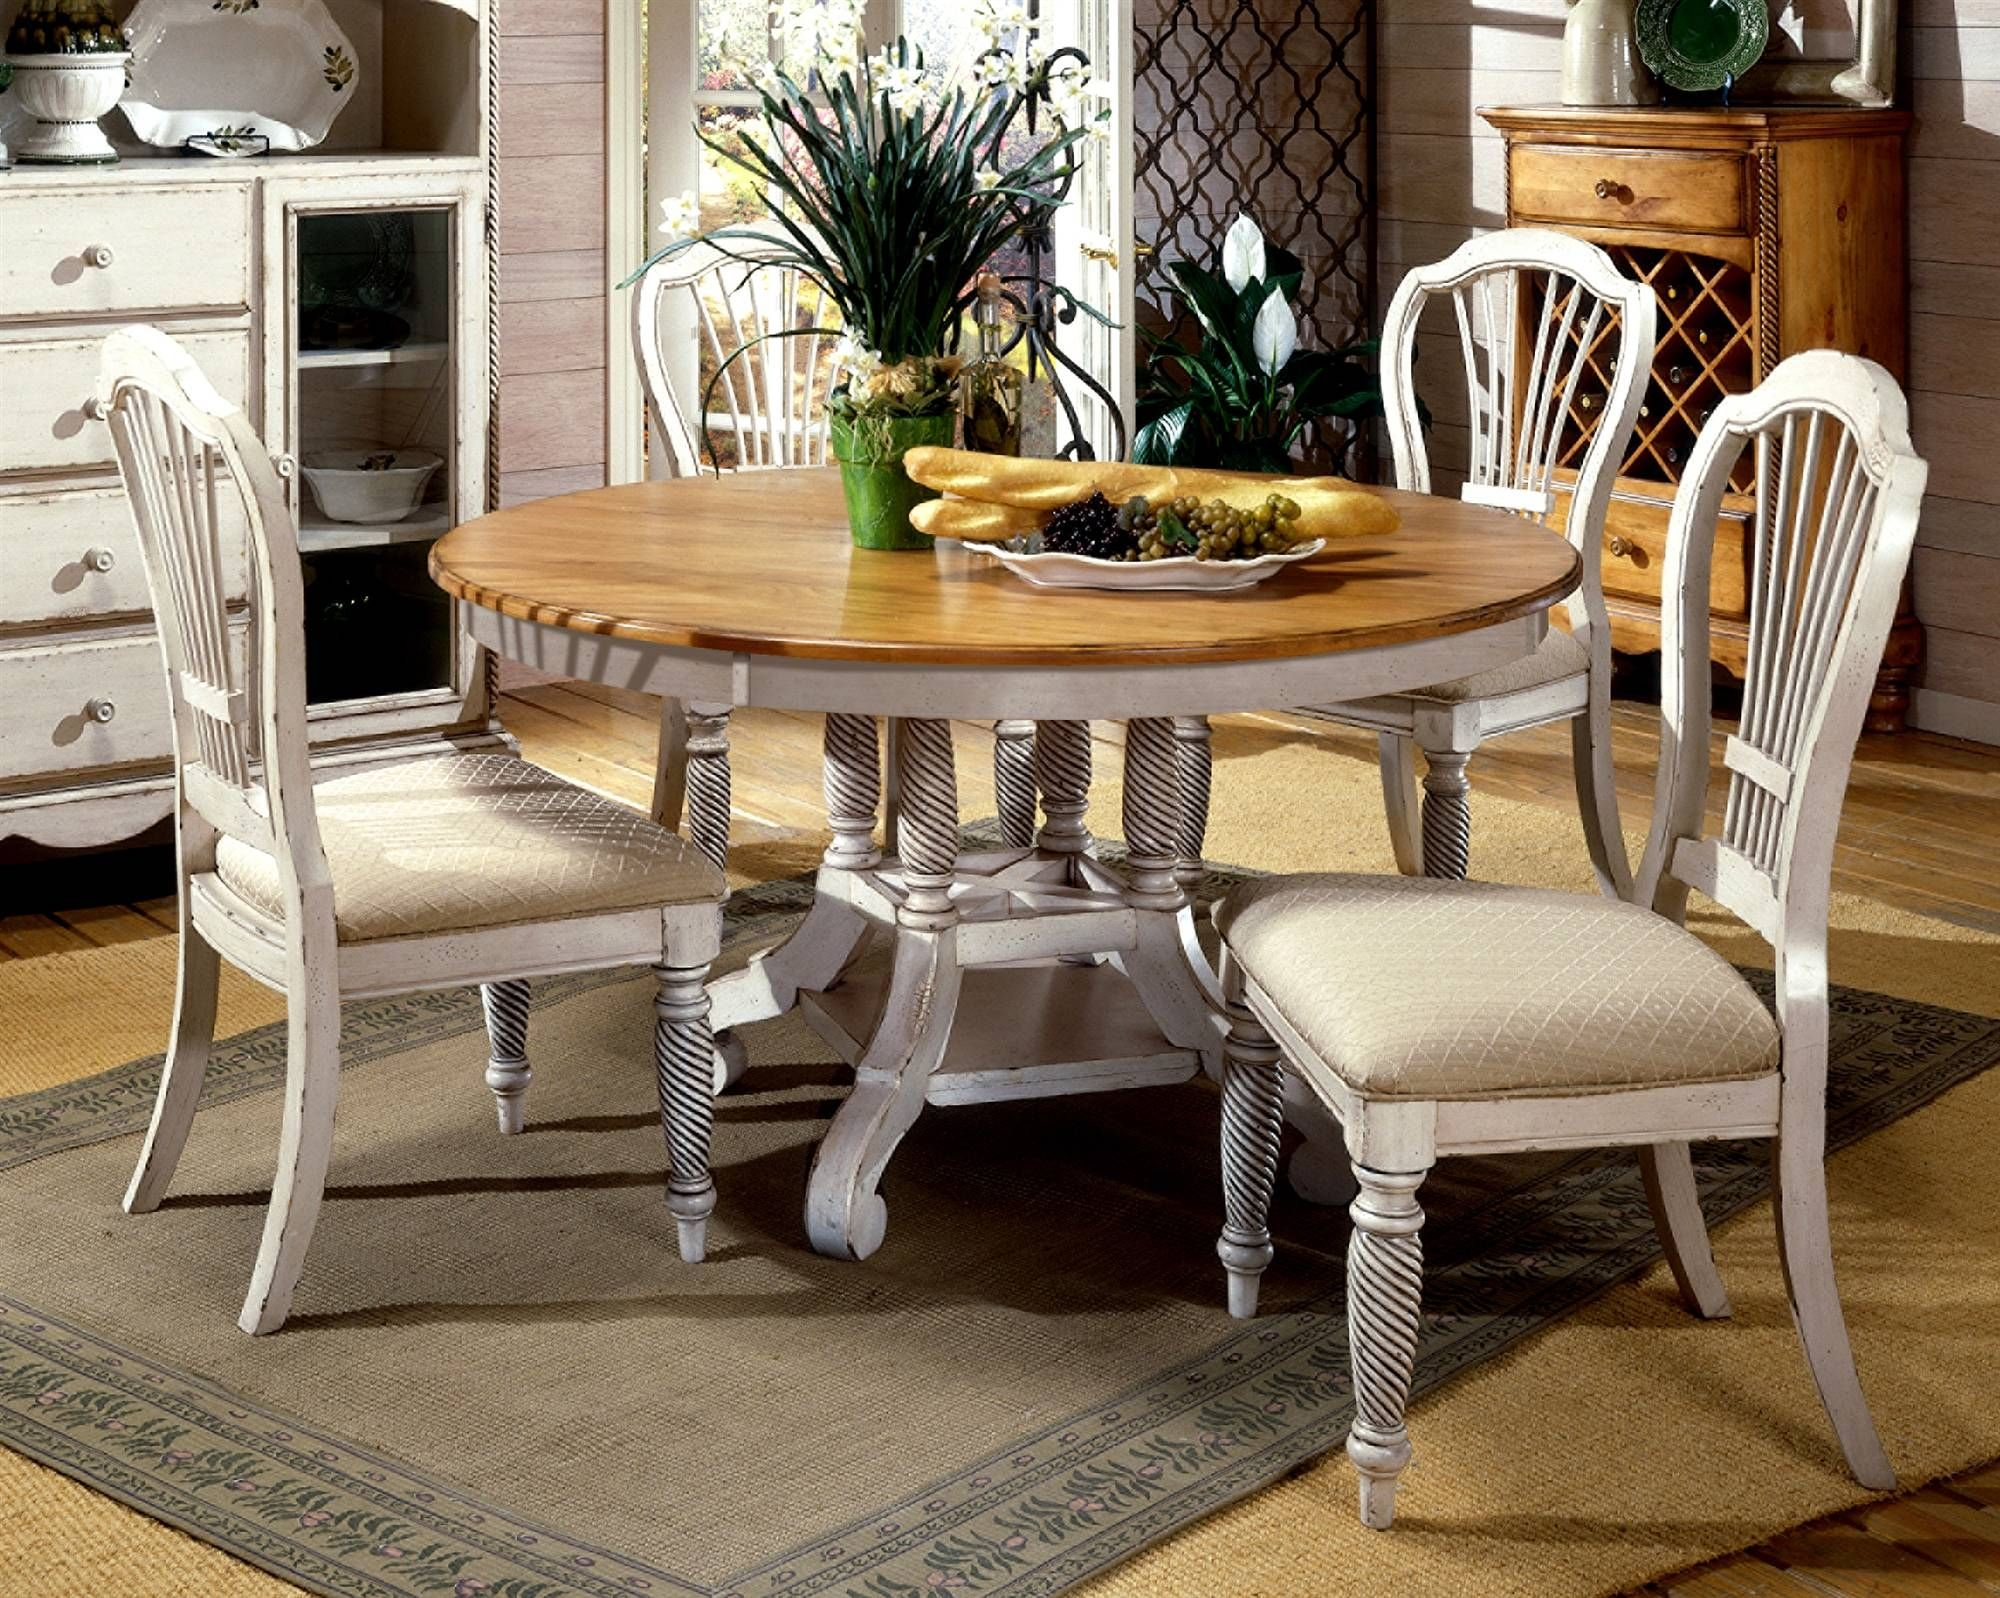 Round White Dining Room Table Set  Httpfmufpi  Pinterest Alluring White Dining Room Table Set Review